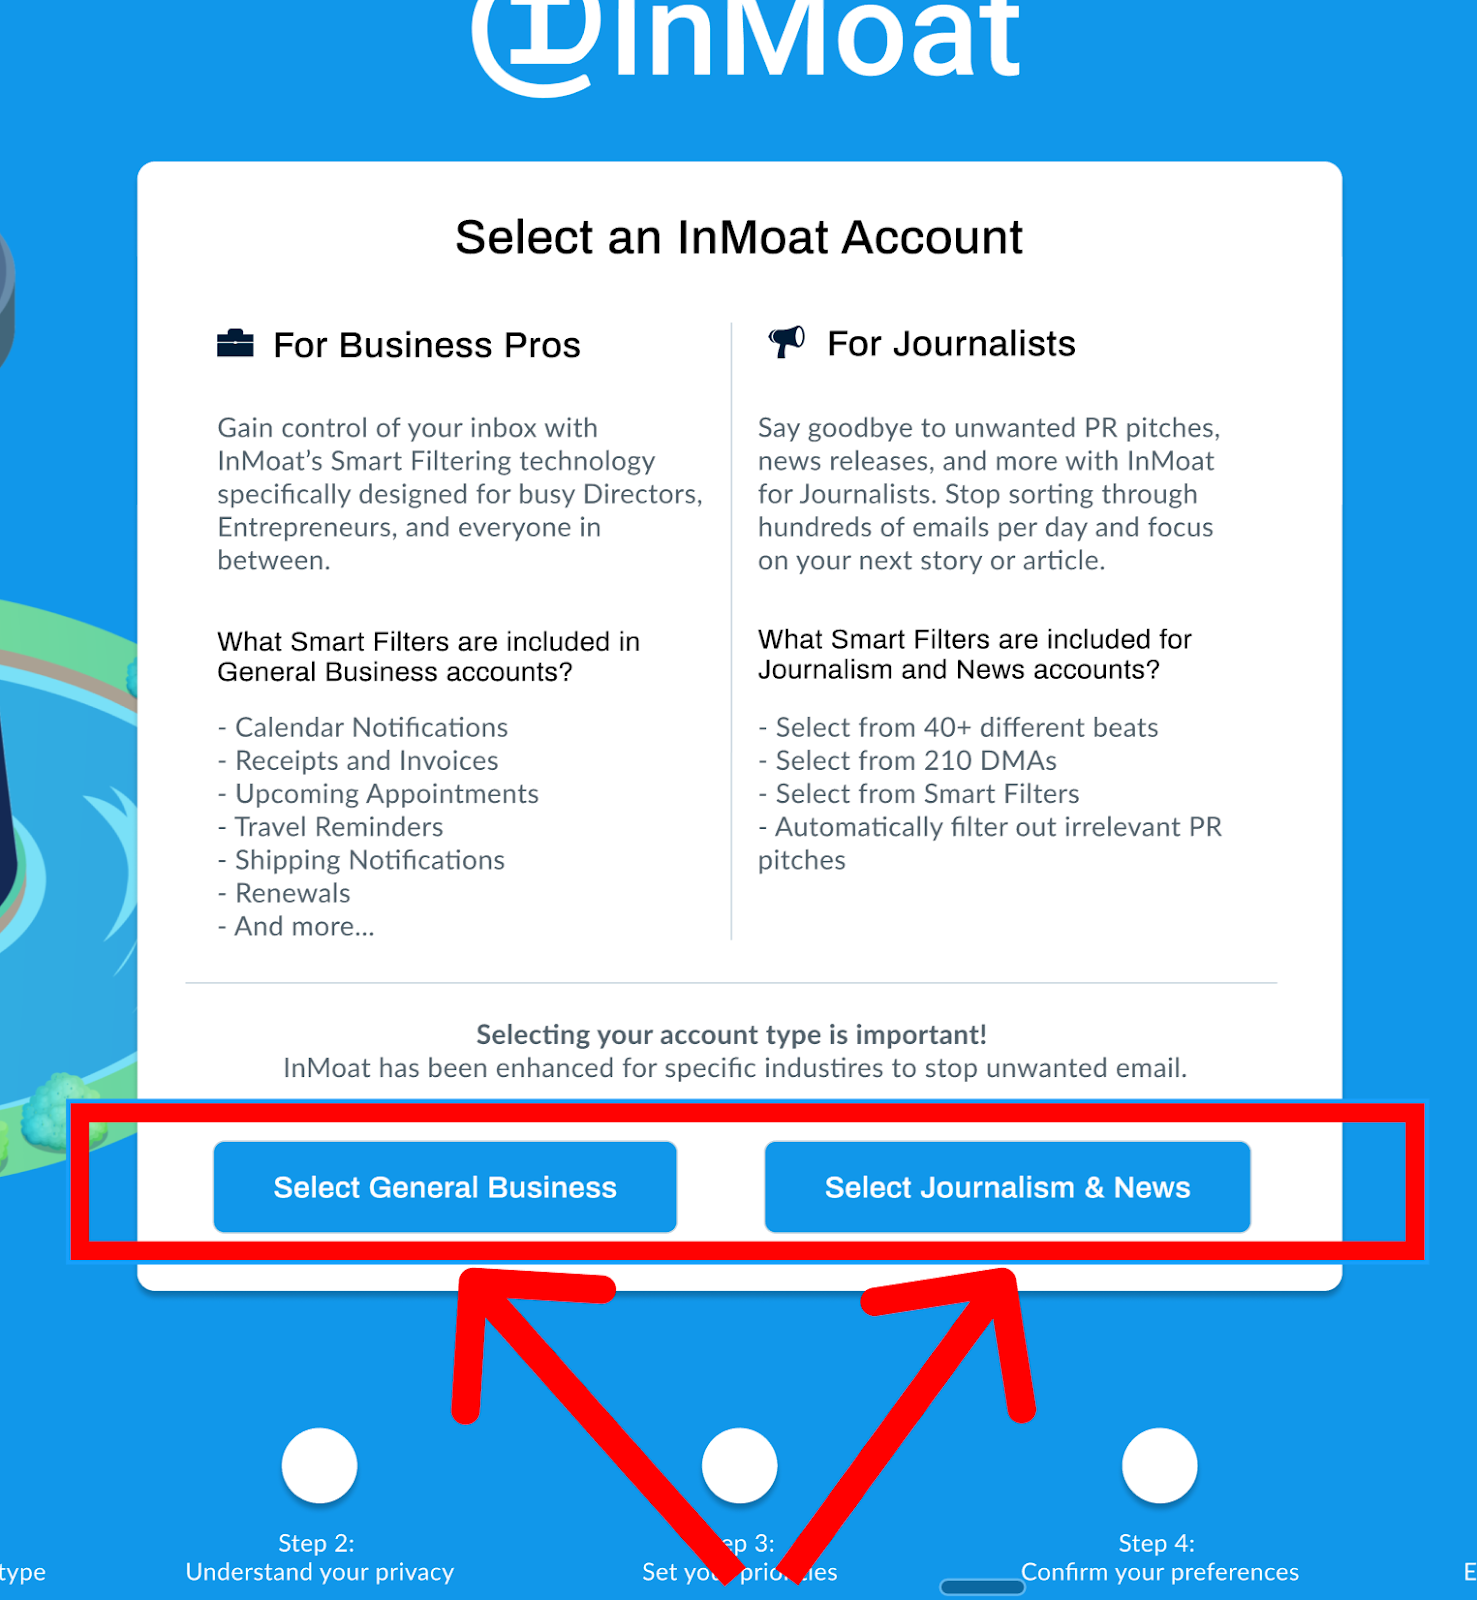 Select the Account Type most relevant to you